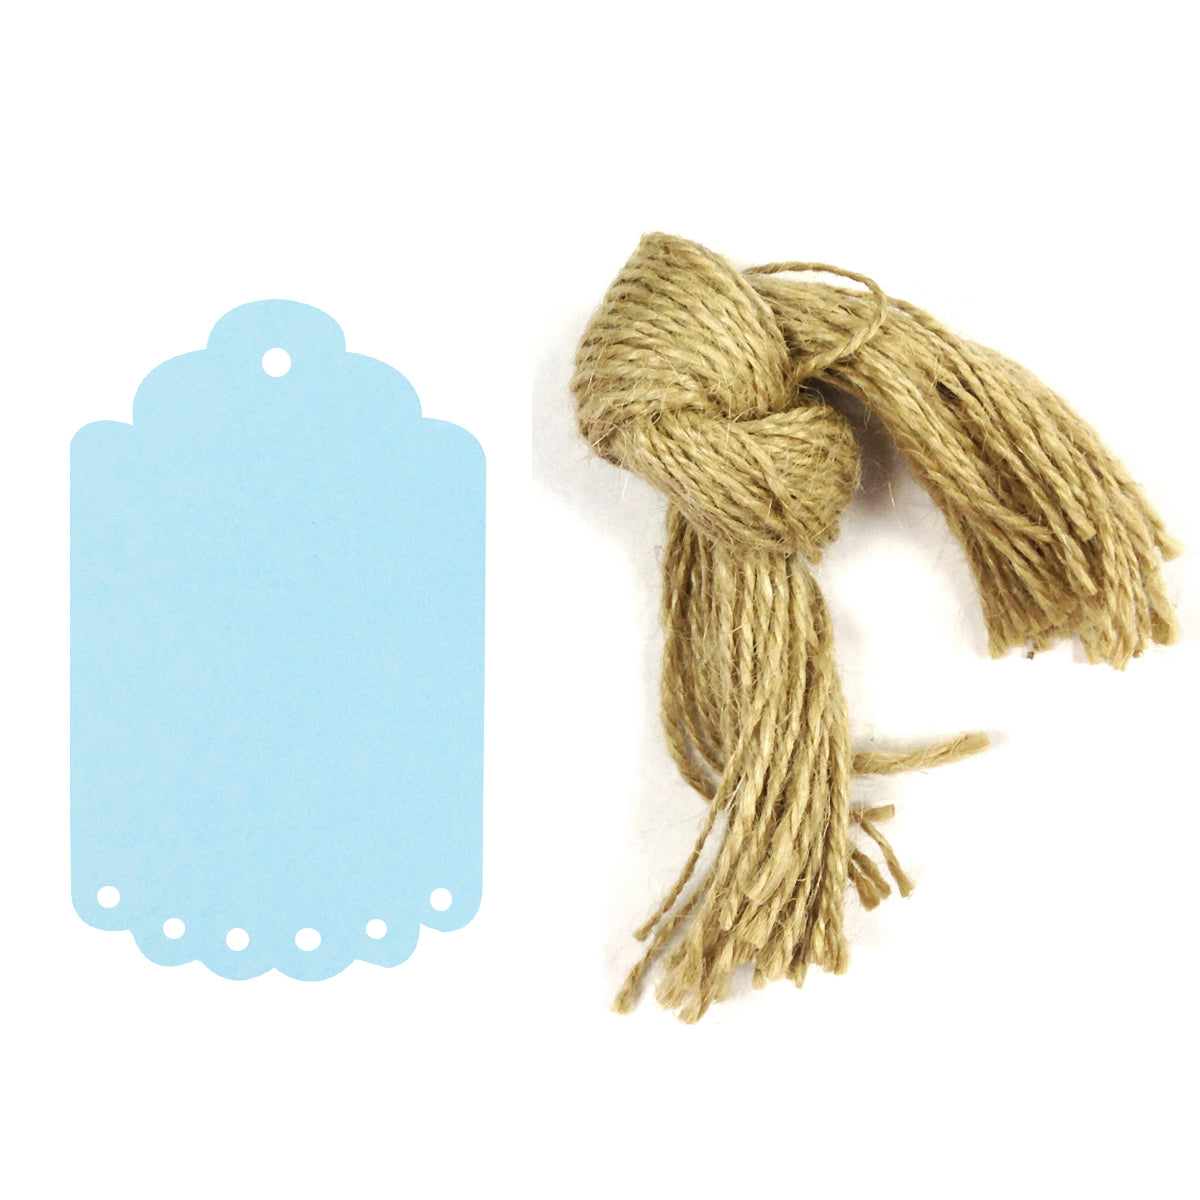 Wrapables 50 Gift Tags/Kraft Hang Tags with Free Cut Strings for Gifts, Crafts & Price Tags, Small Scalloped Edge